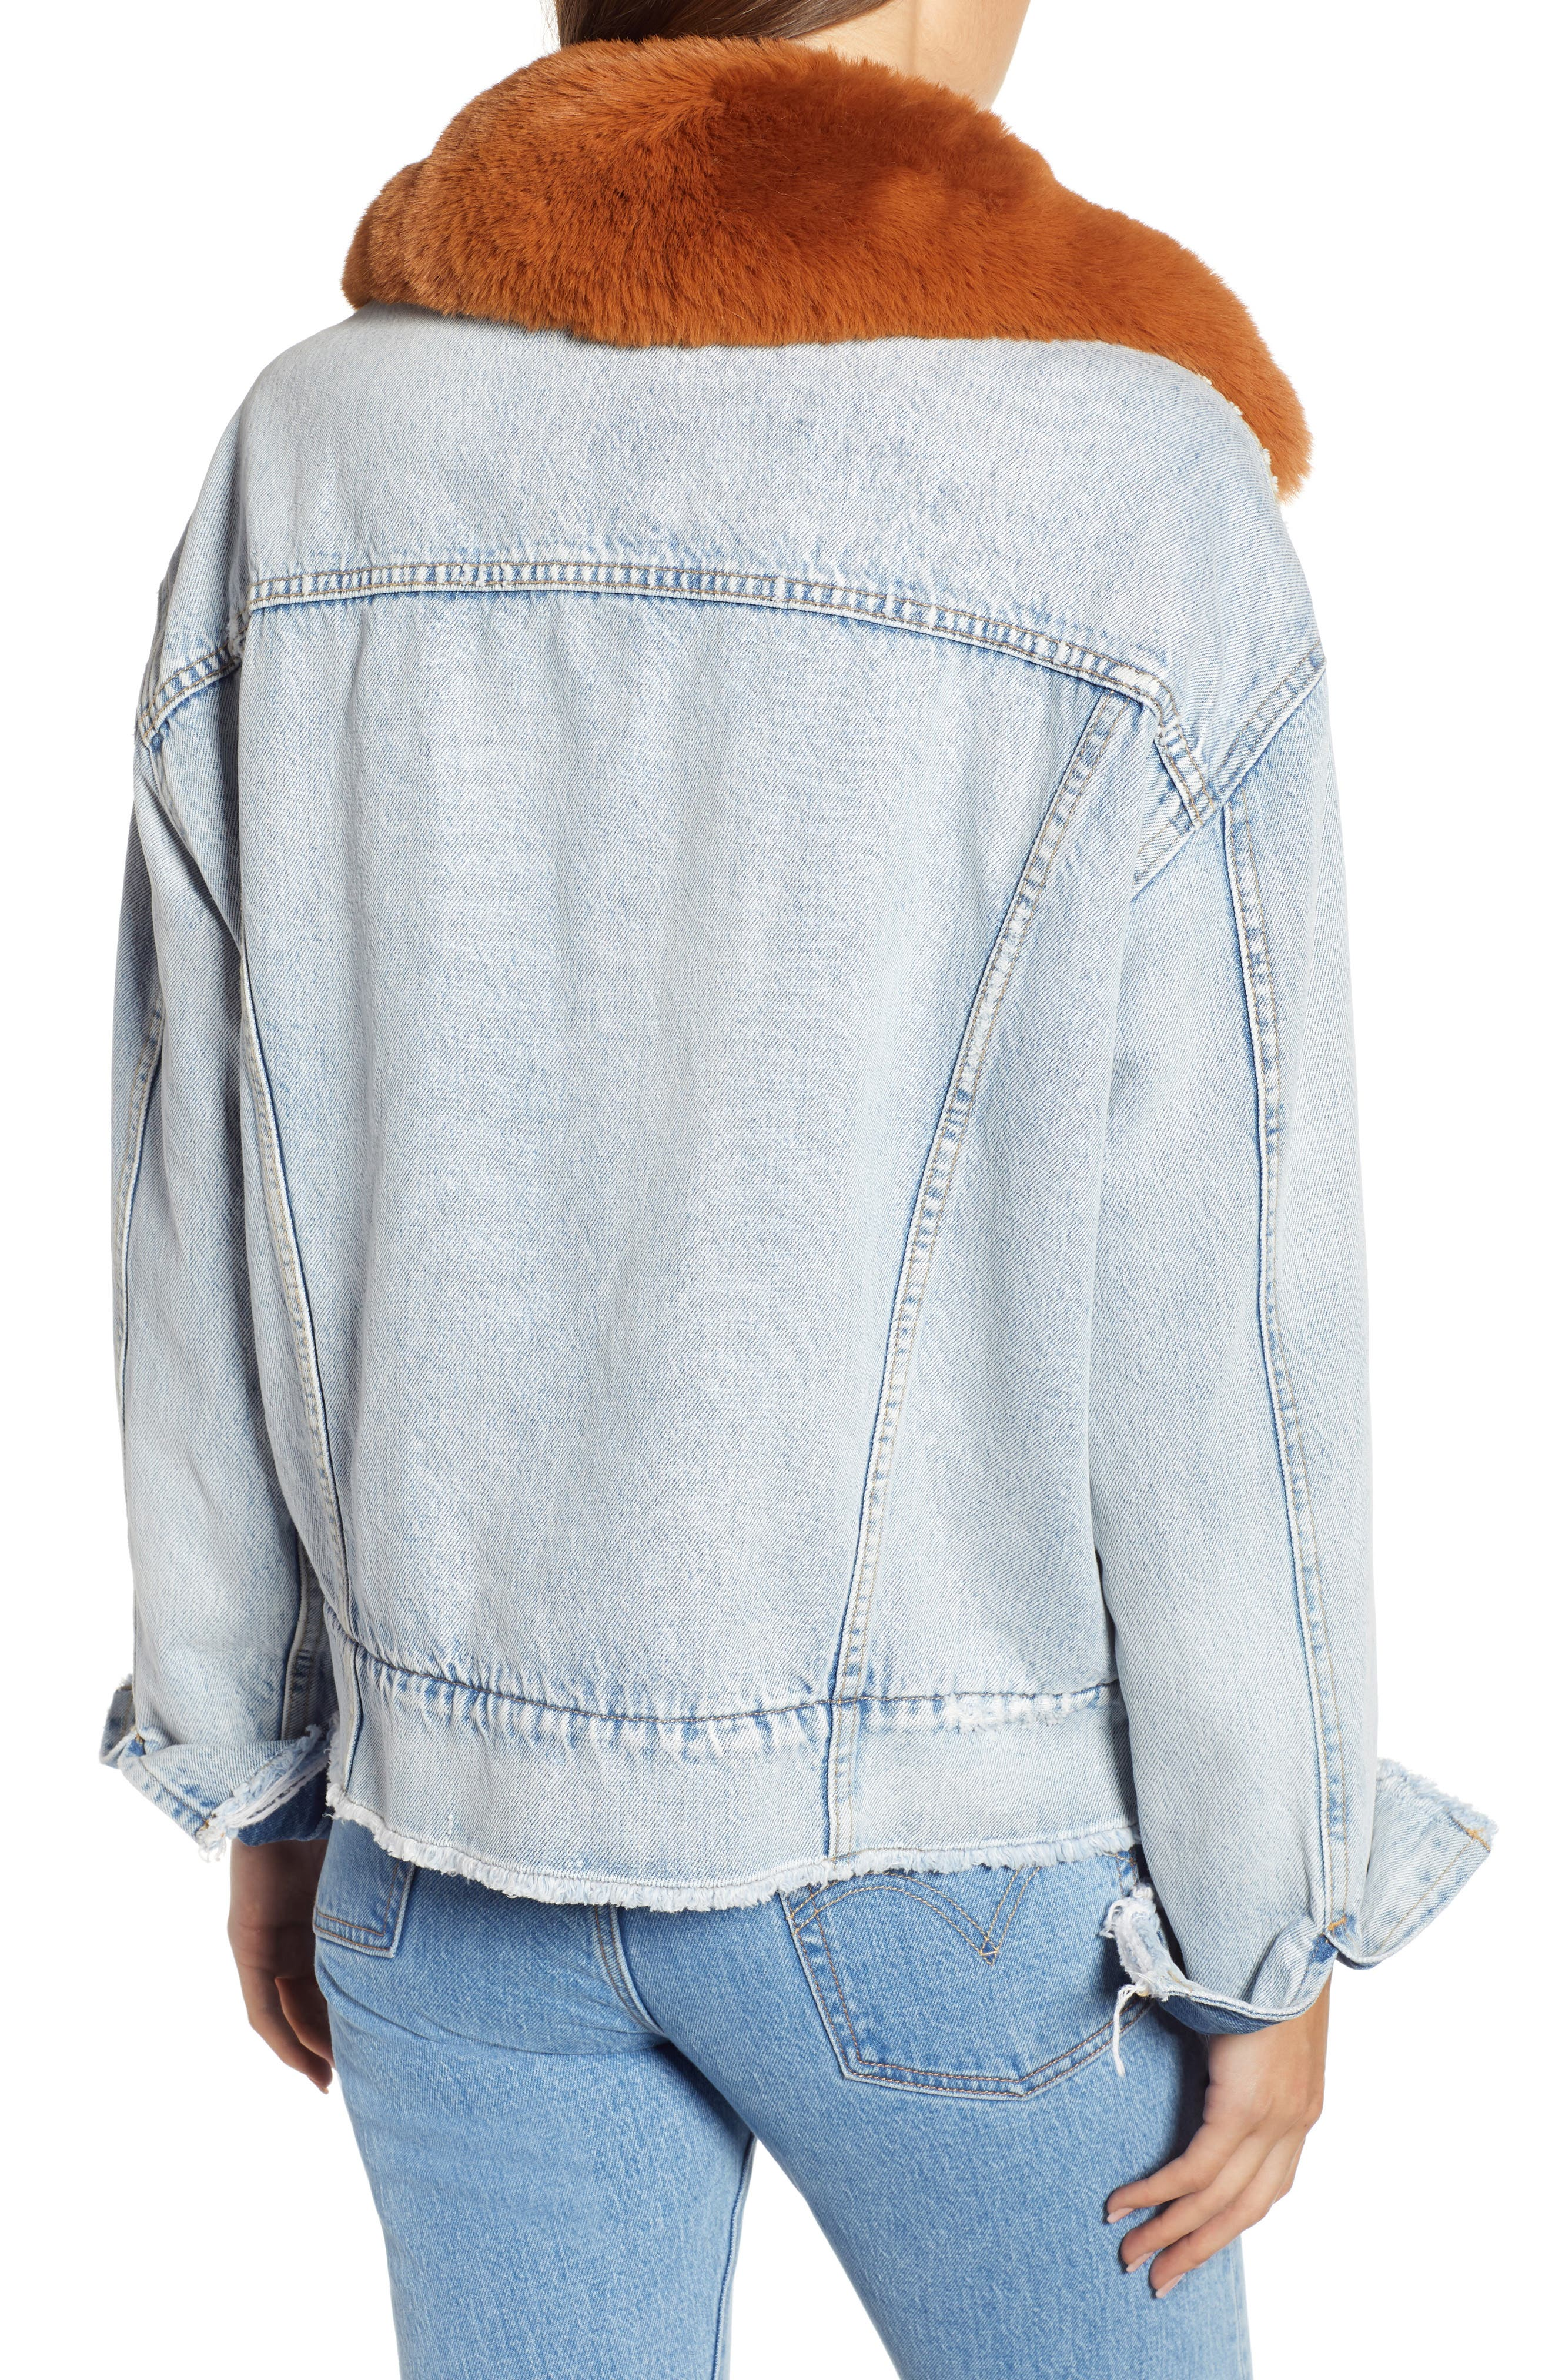 Oversize Faux Shearling Lined Denim Trucker Jacket with Removable Faux Fur Collar,                             Alternate thumbnail 2, color,                             401